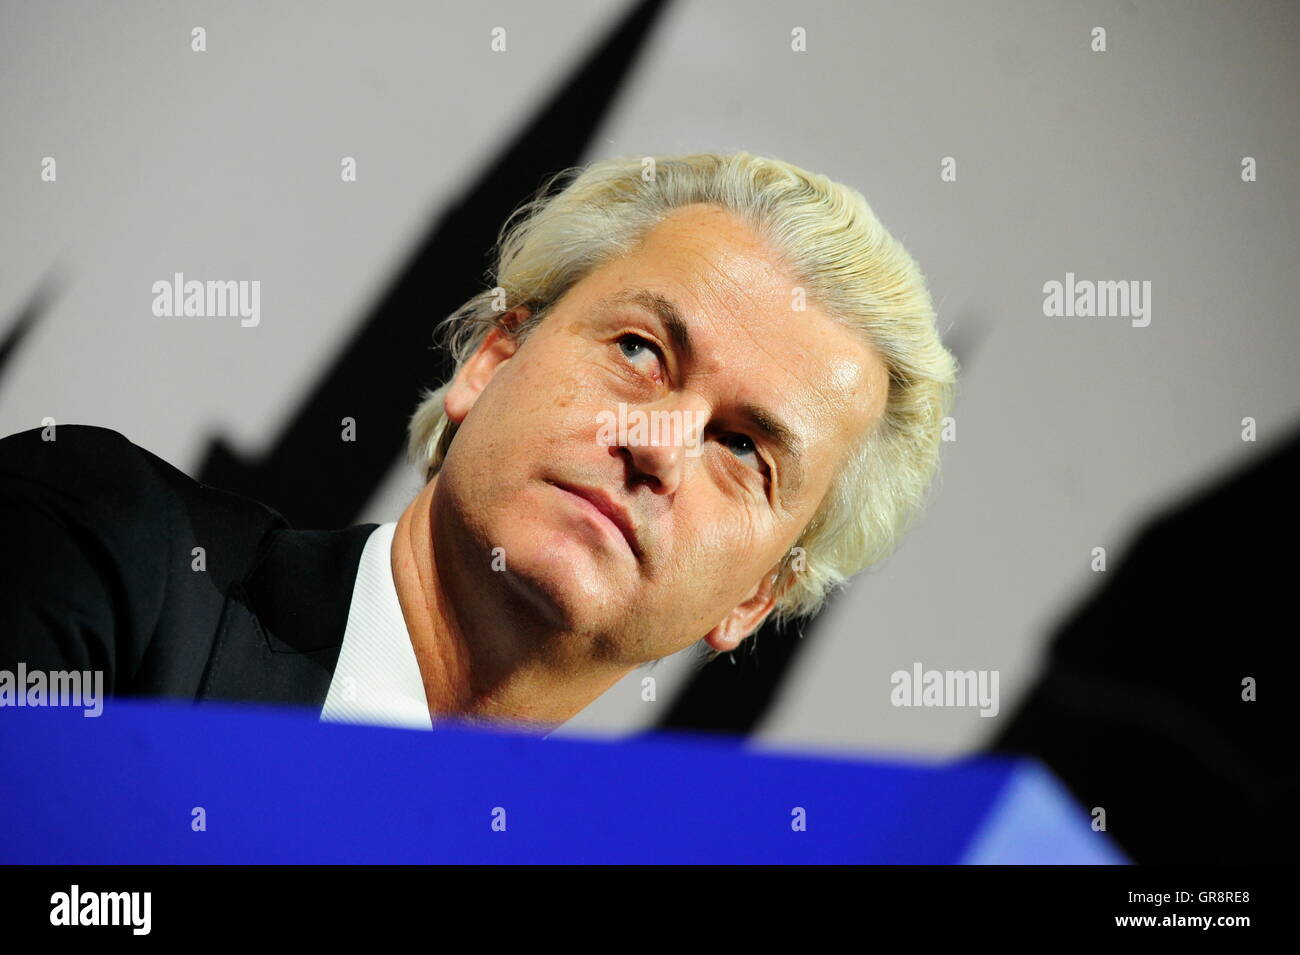 Politicians Talk In Vienna About Alleged Europe Threat Of Islamization With Geert Wilders - Stock Image